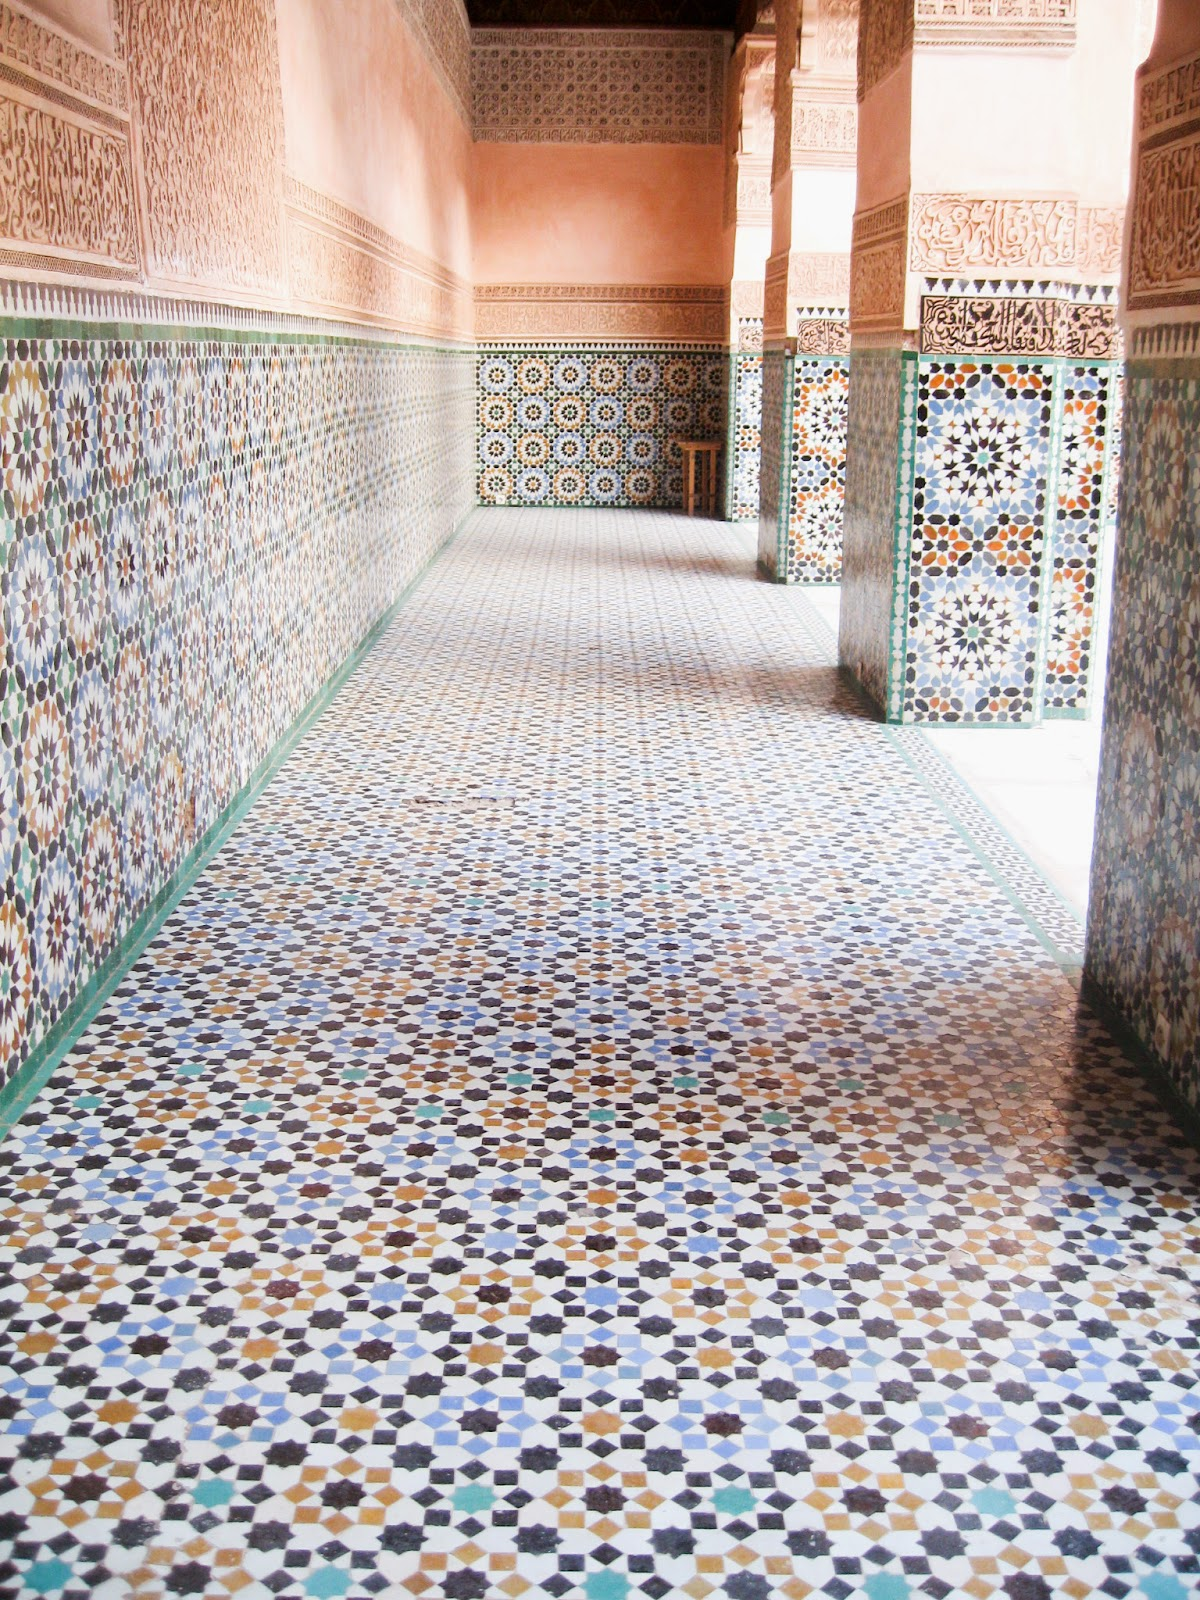 Marrakech top tourist attractions: Beautiful moorish architechture and tile work of Medersa Ben Youssef